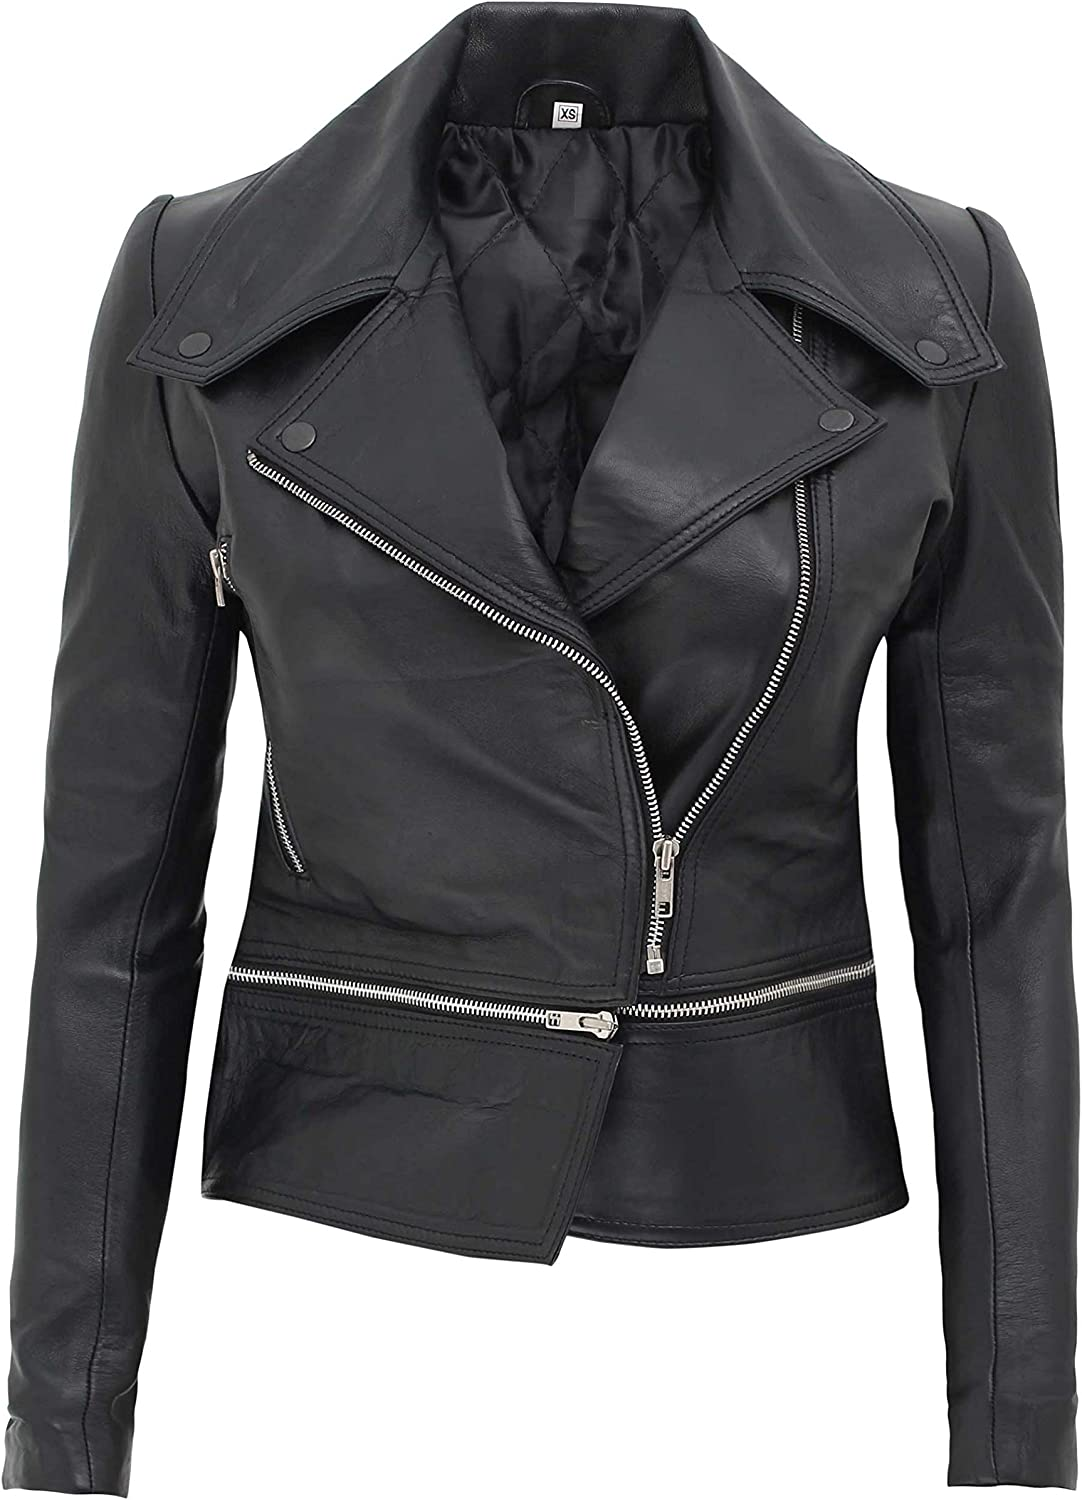 Decrum Real Leather Jackets for Women - Lambskin Womens Leather Jacket